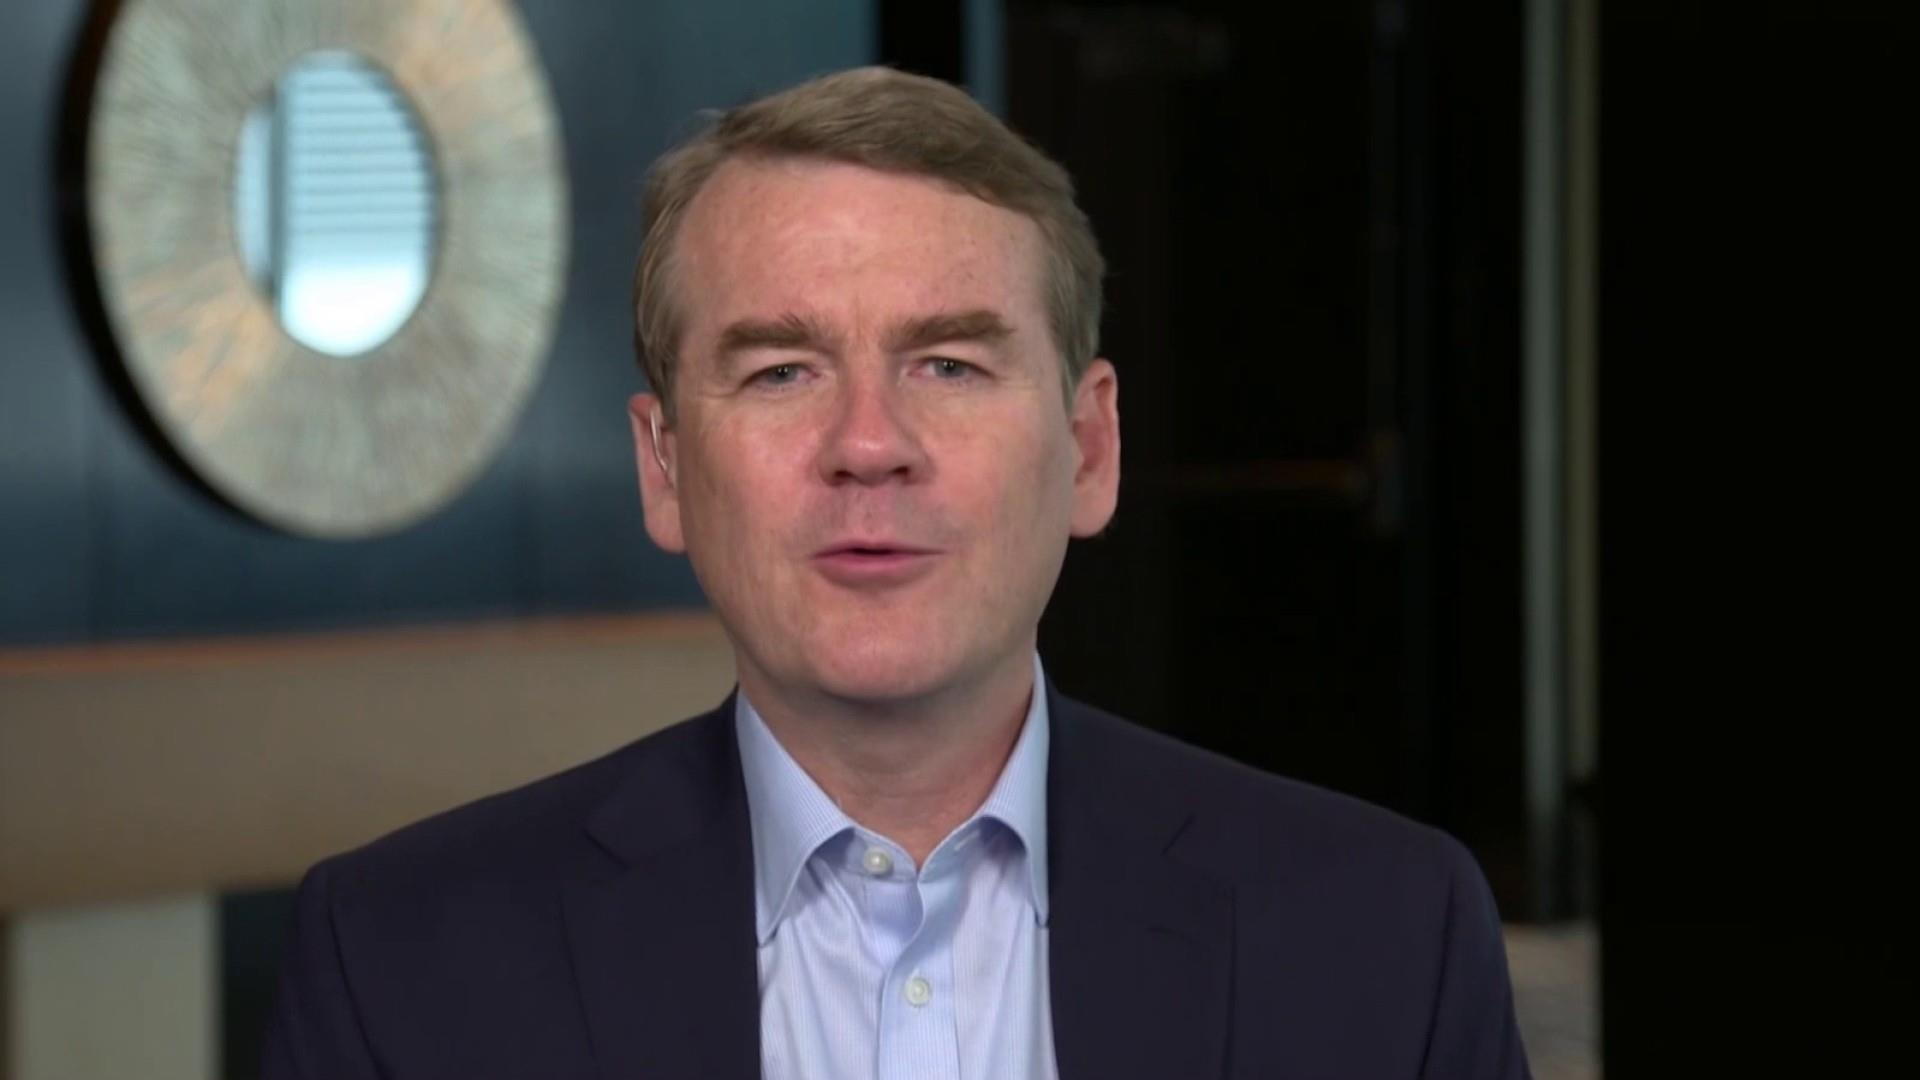 Sen. Bennet: Trump is living in an alternative universe